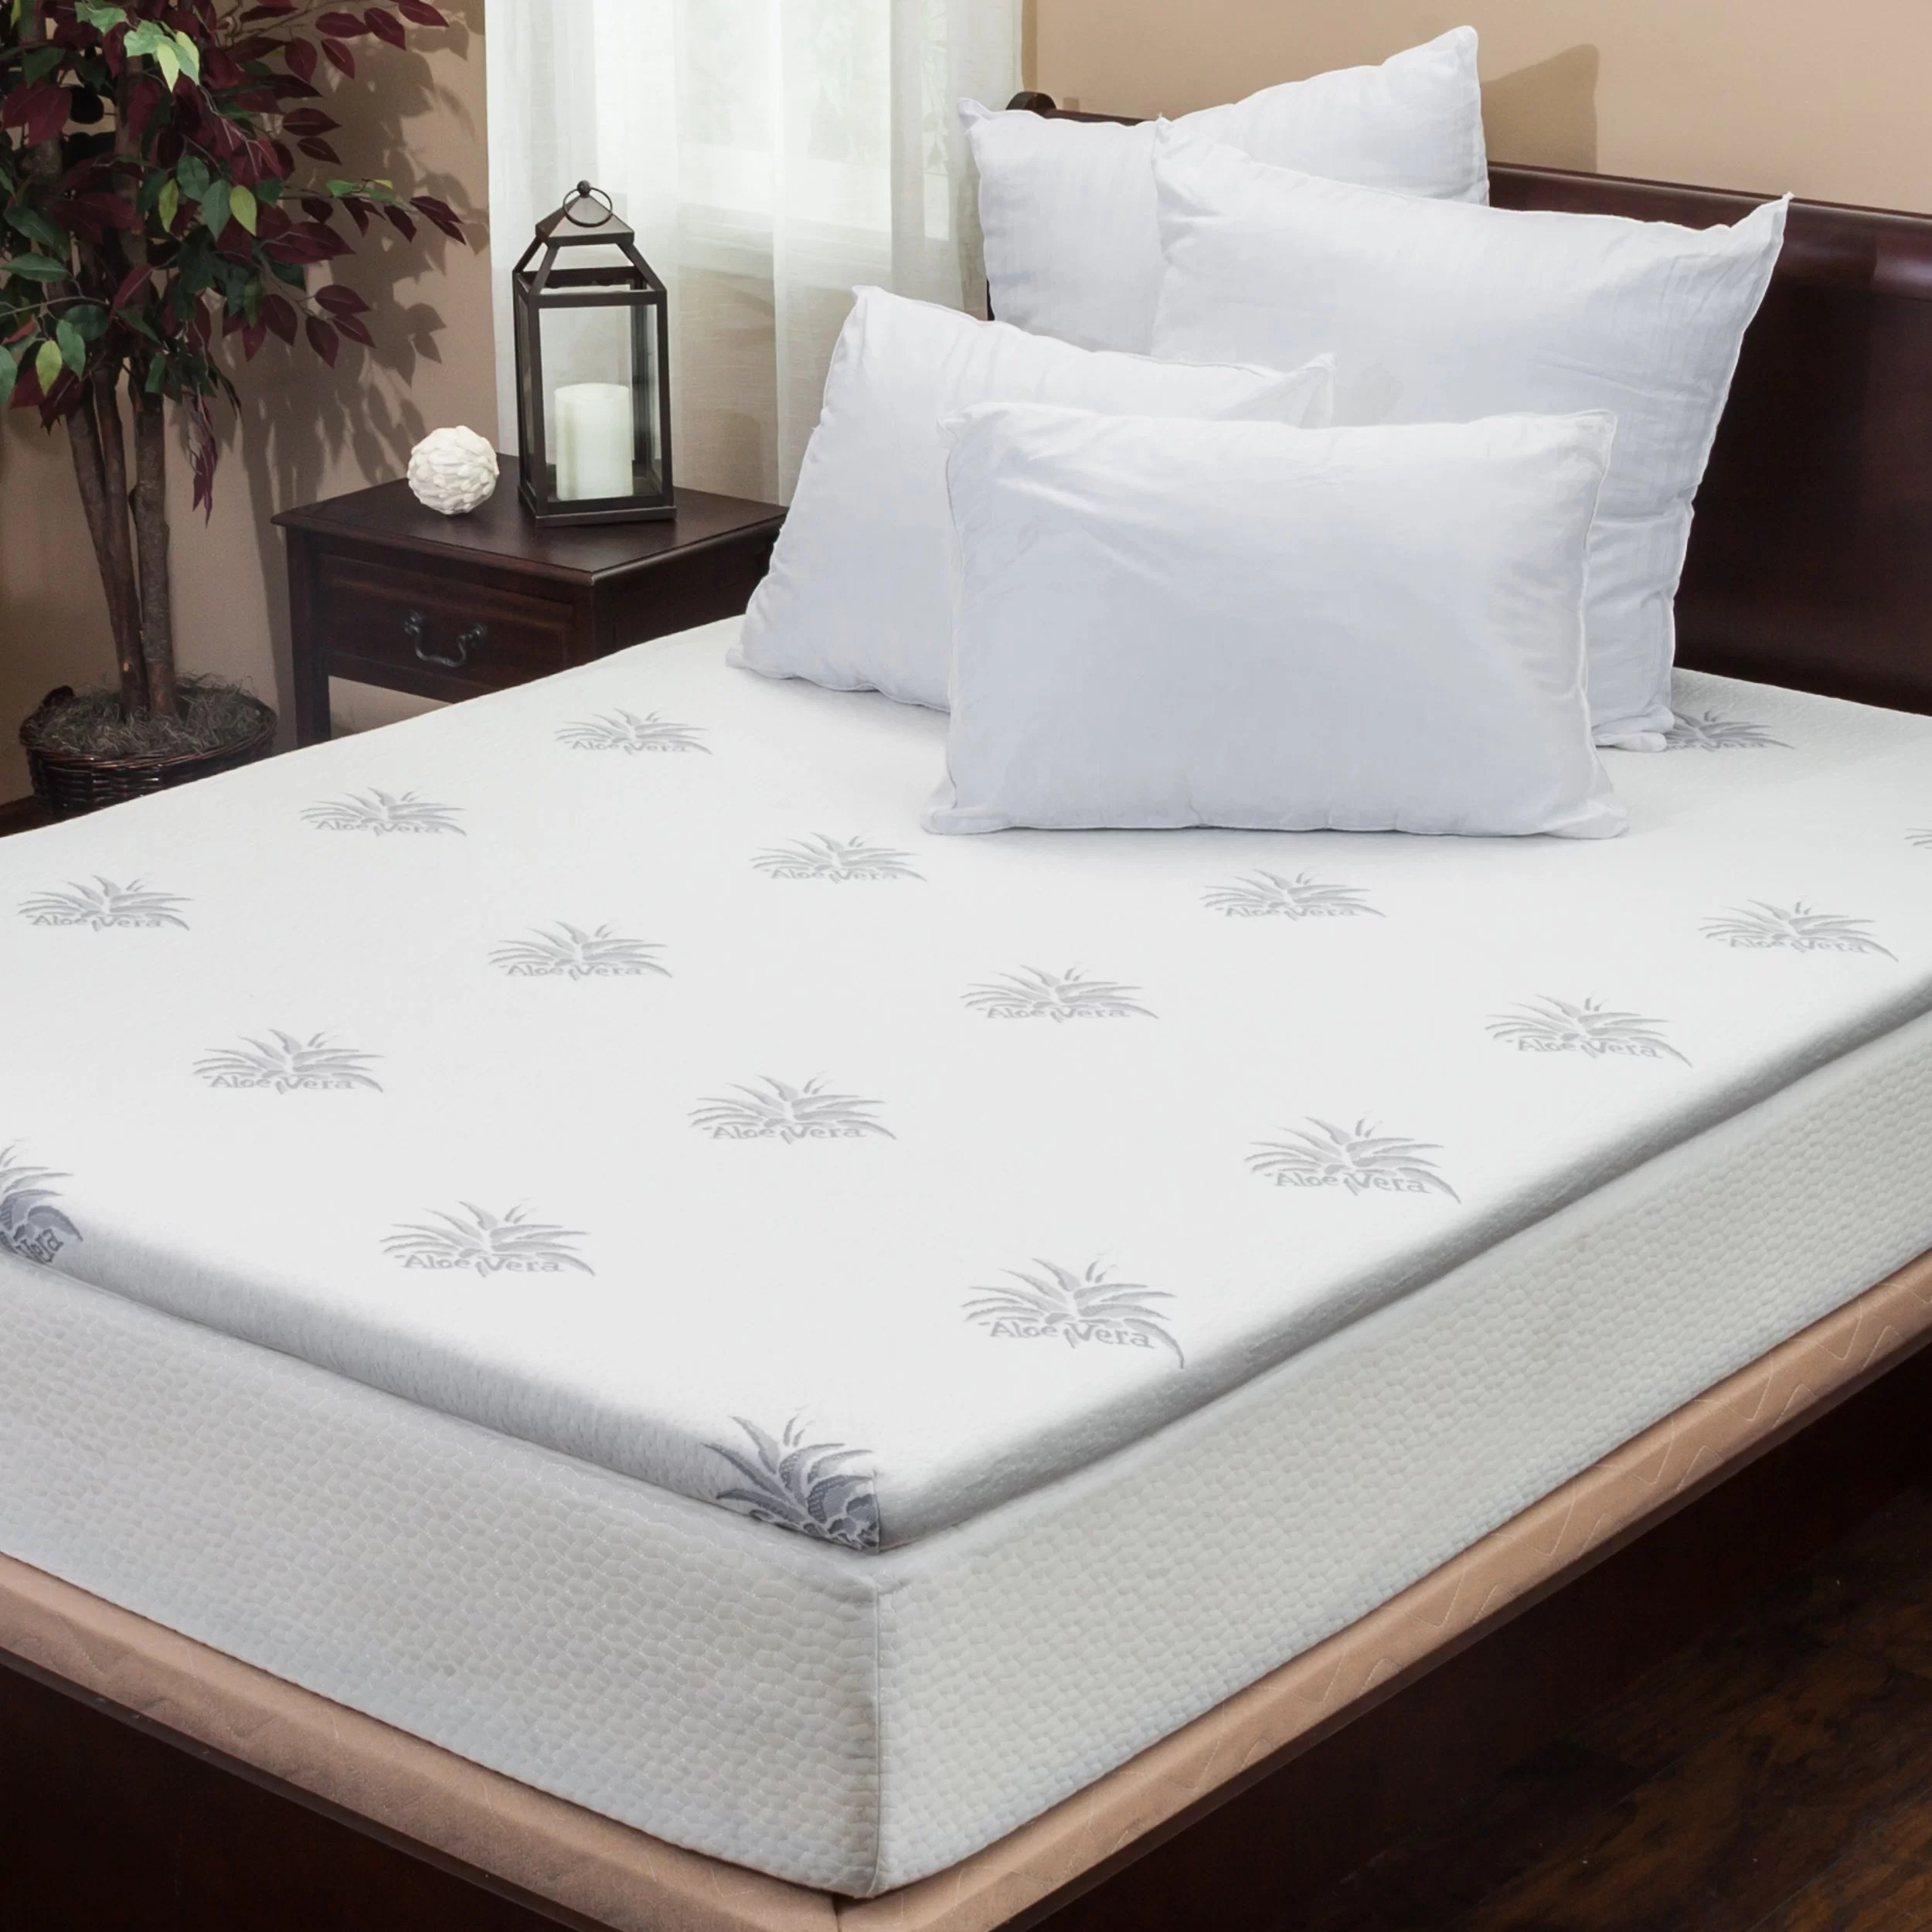 Buy Mattress Topper Home Loft Concepts Gel Memory Foam Mattress Topper